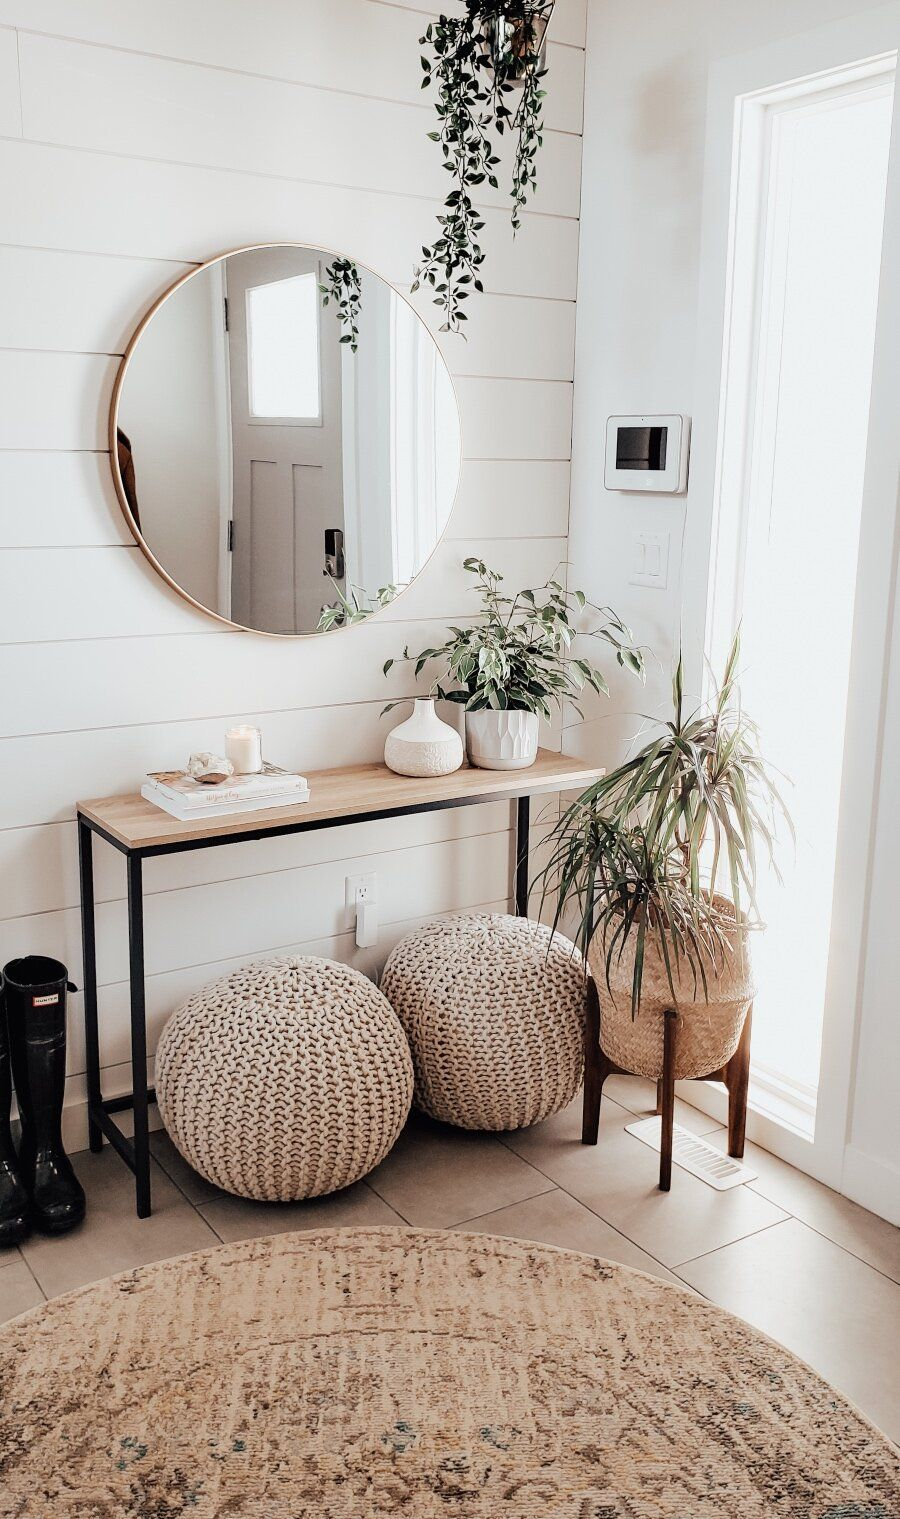 17 DIY Projects for First Time Homebuyers — Anna Elizabeth